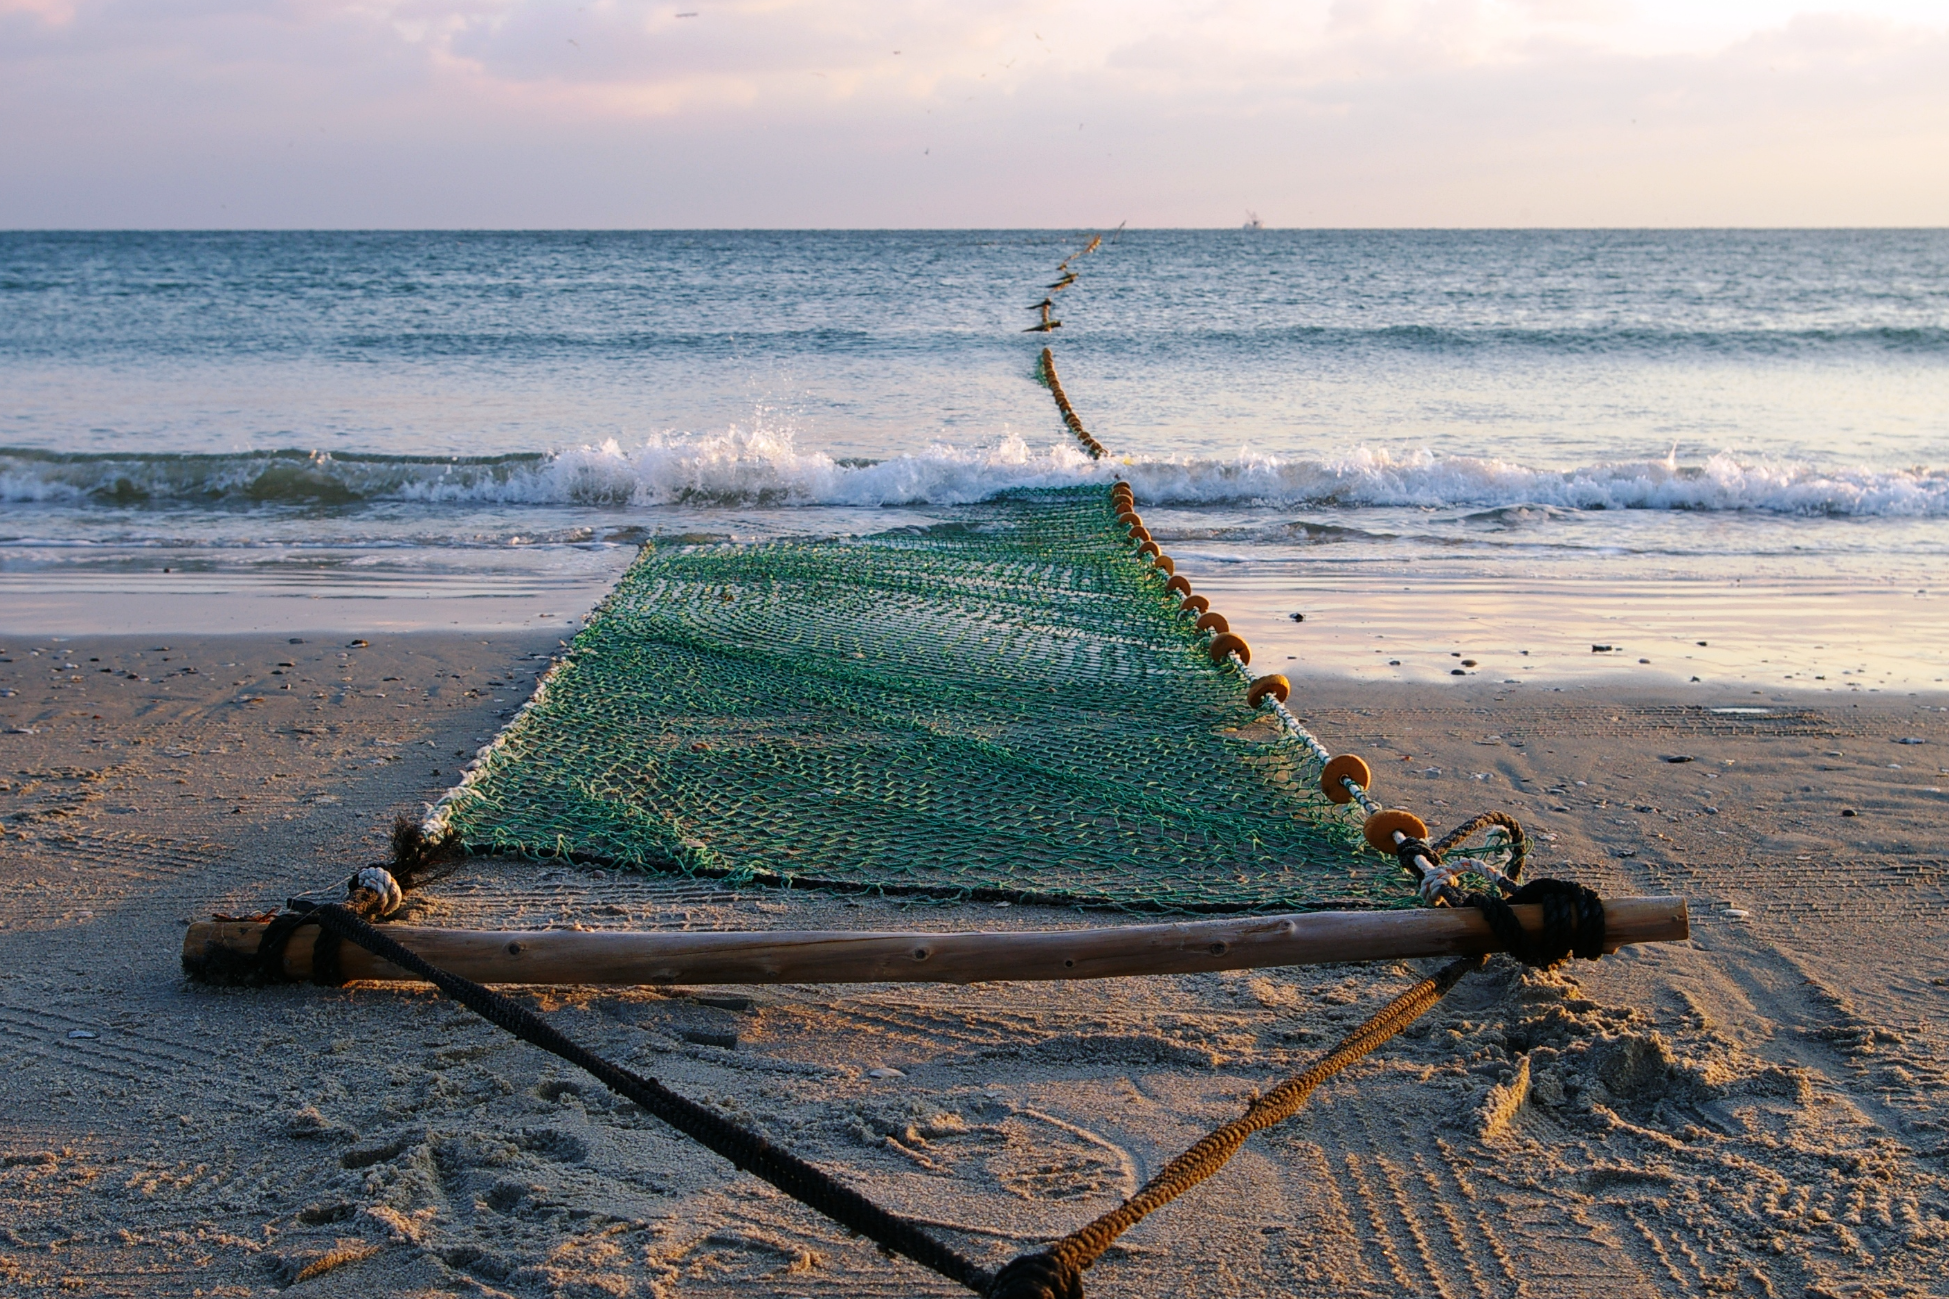 Fishing Net on Beach CREDIT: Brandon Puckett / coral reef image bank